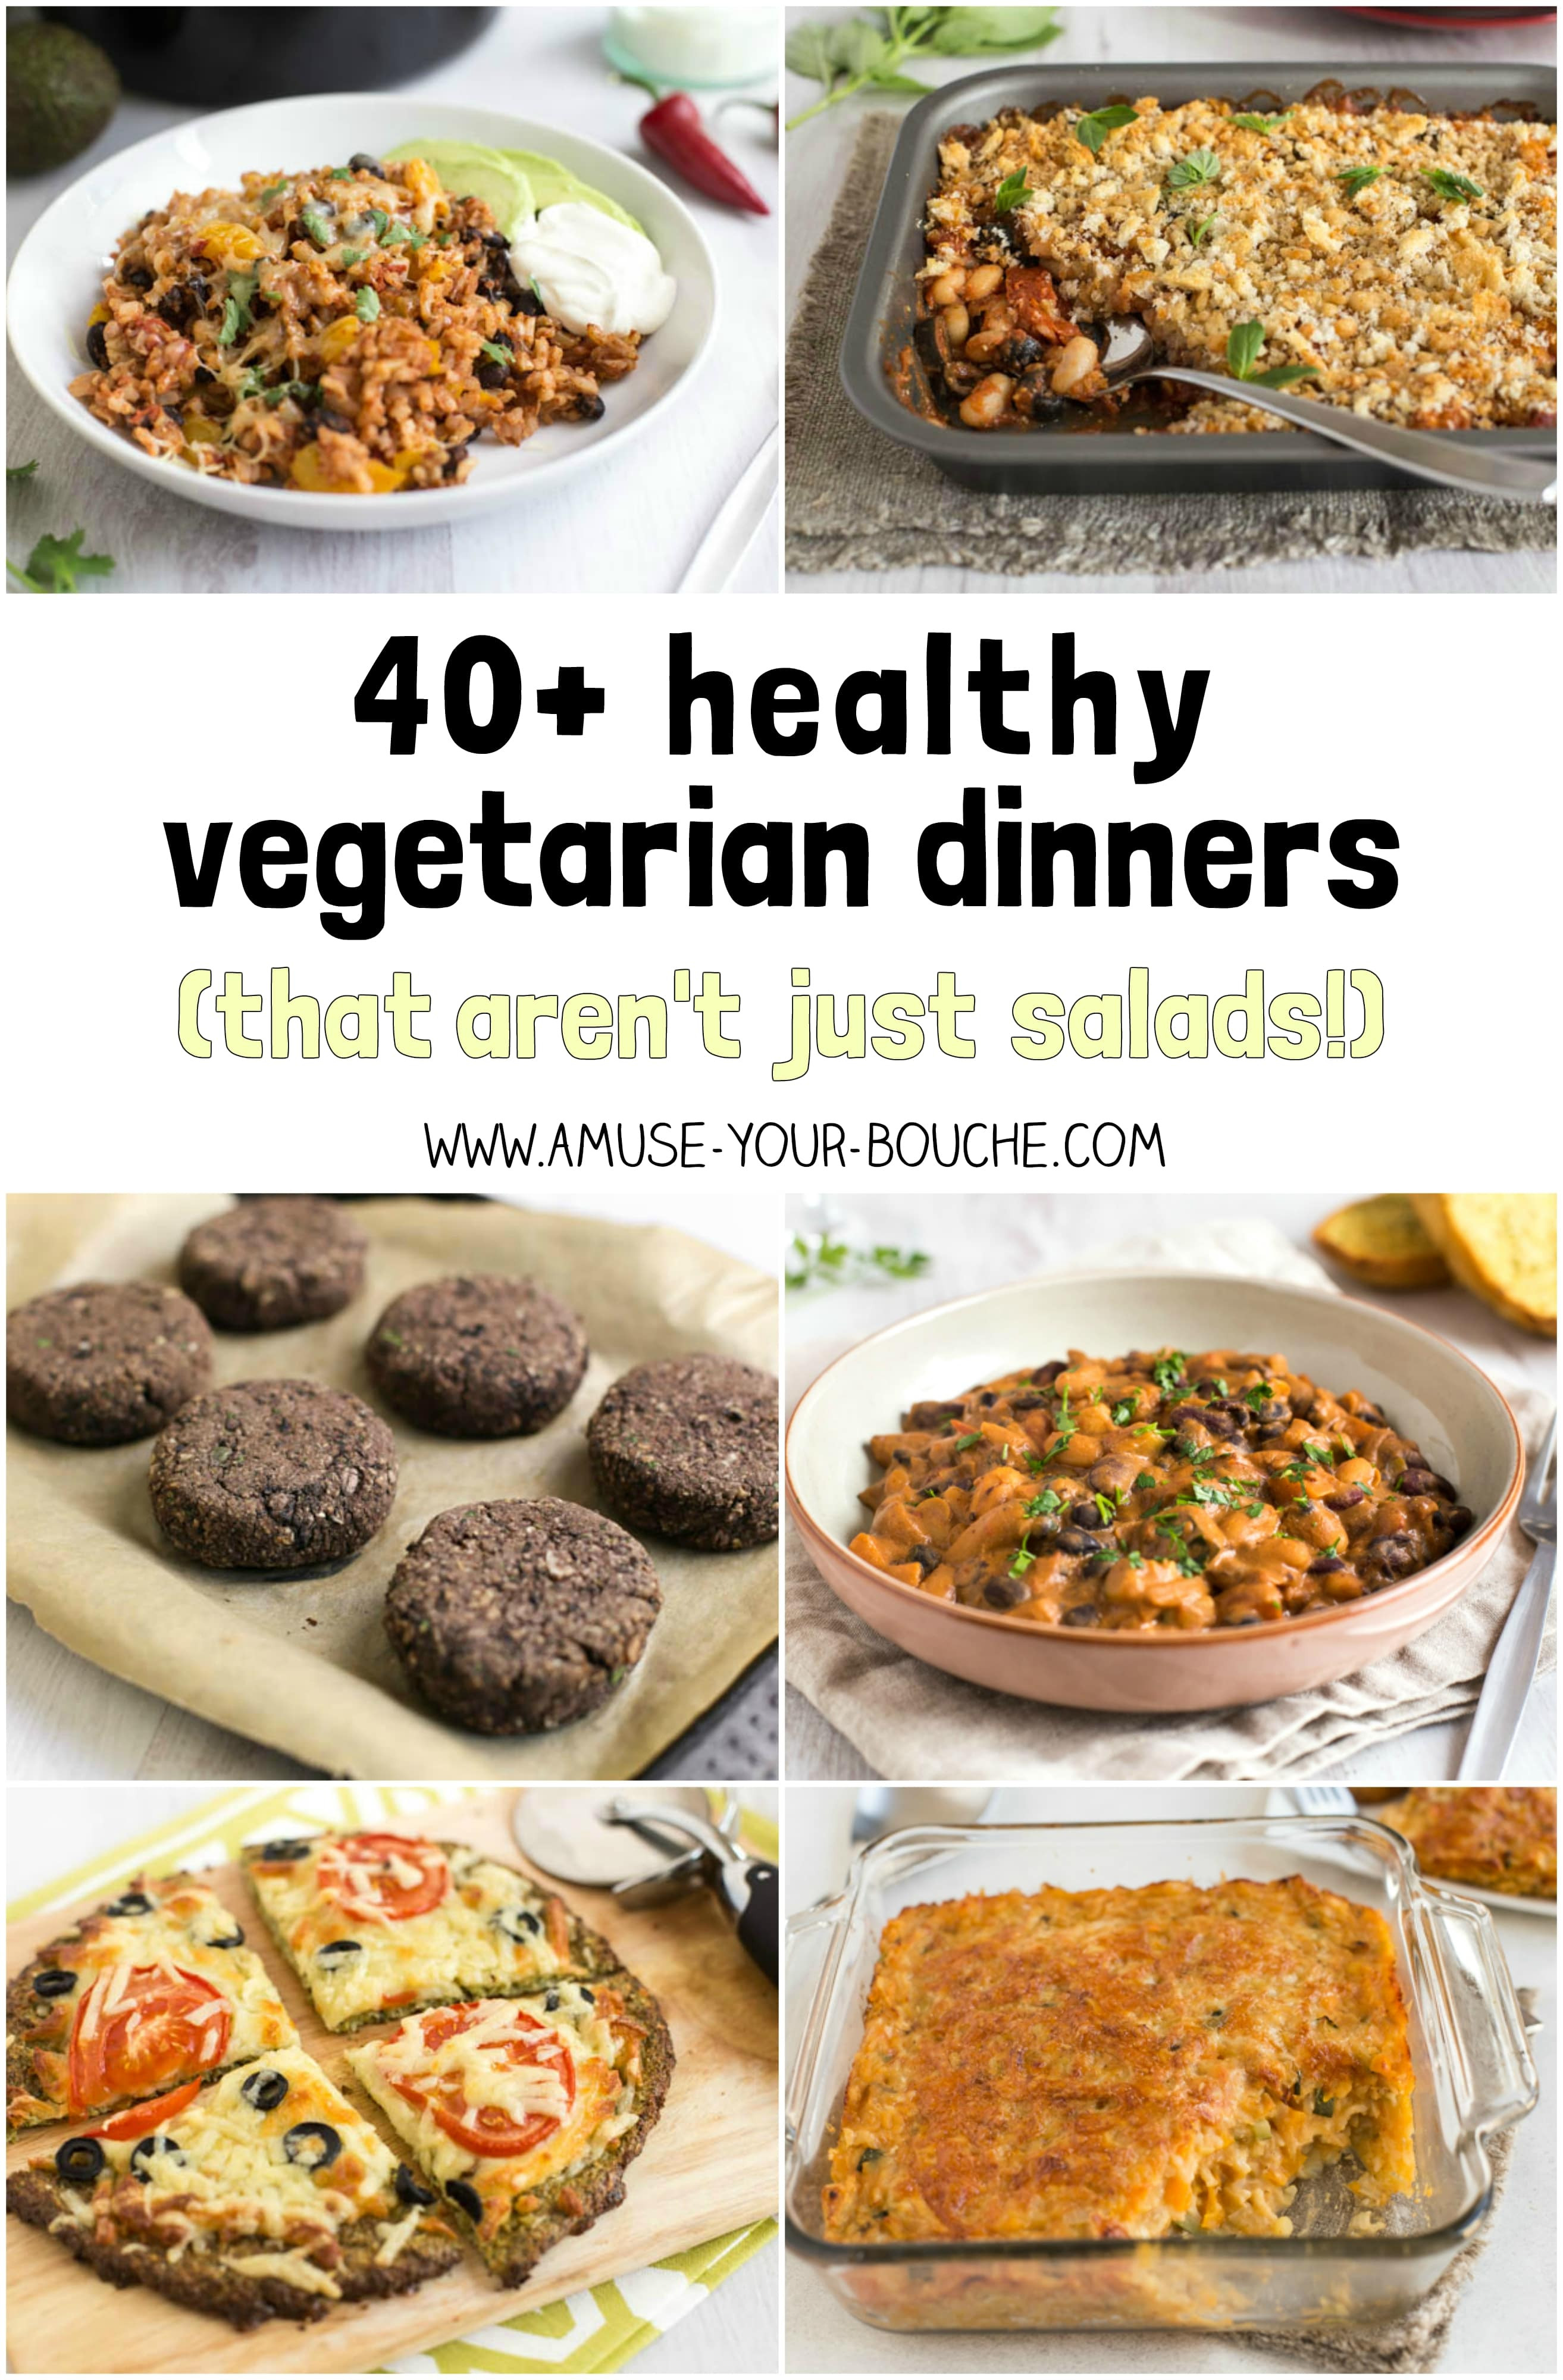 Vegetarian Healthy Dinners  40 healthy ve arian dinners that aren t just salads